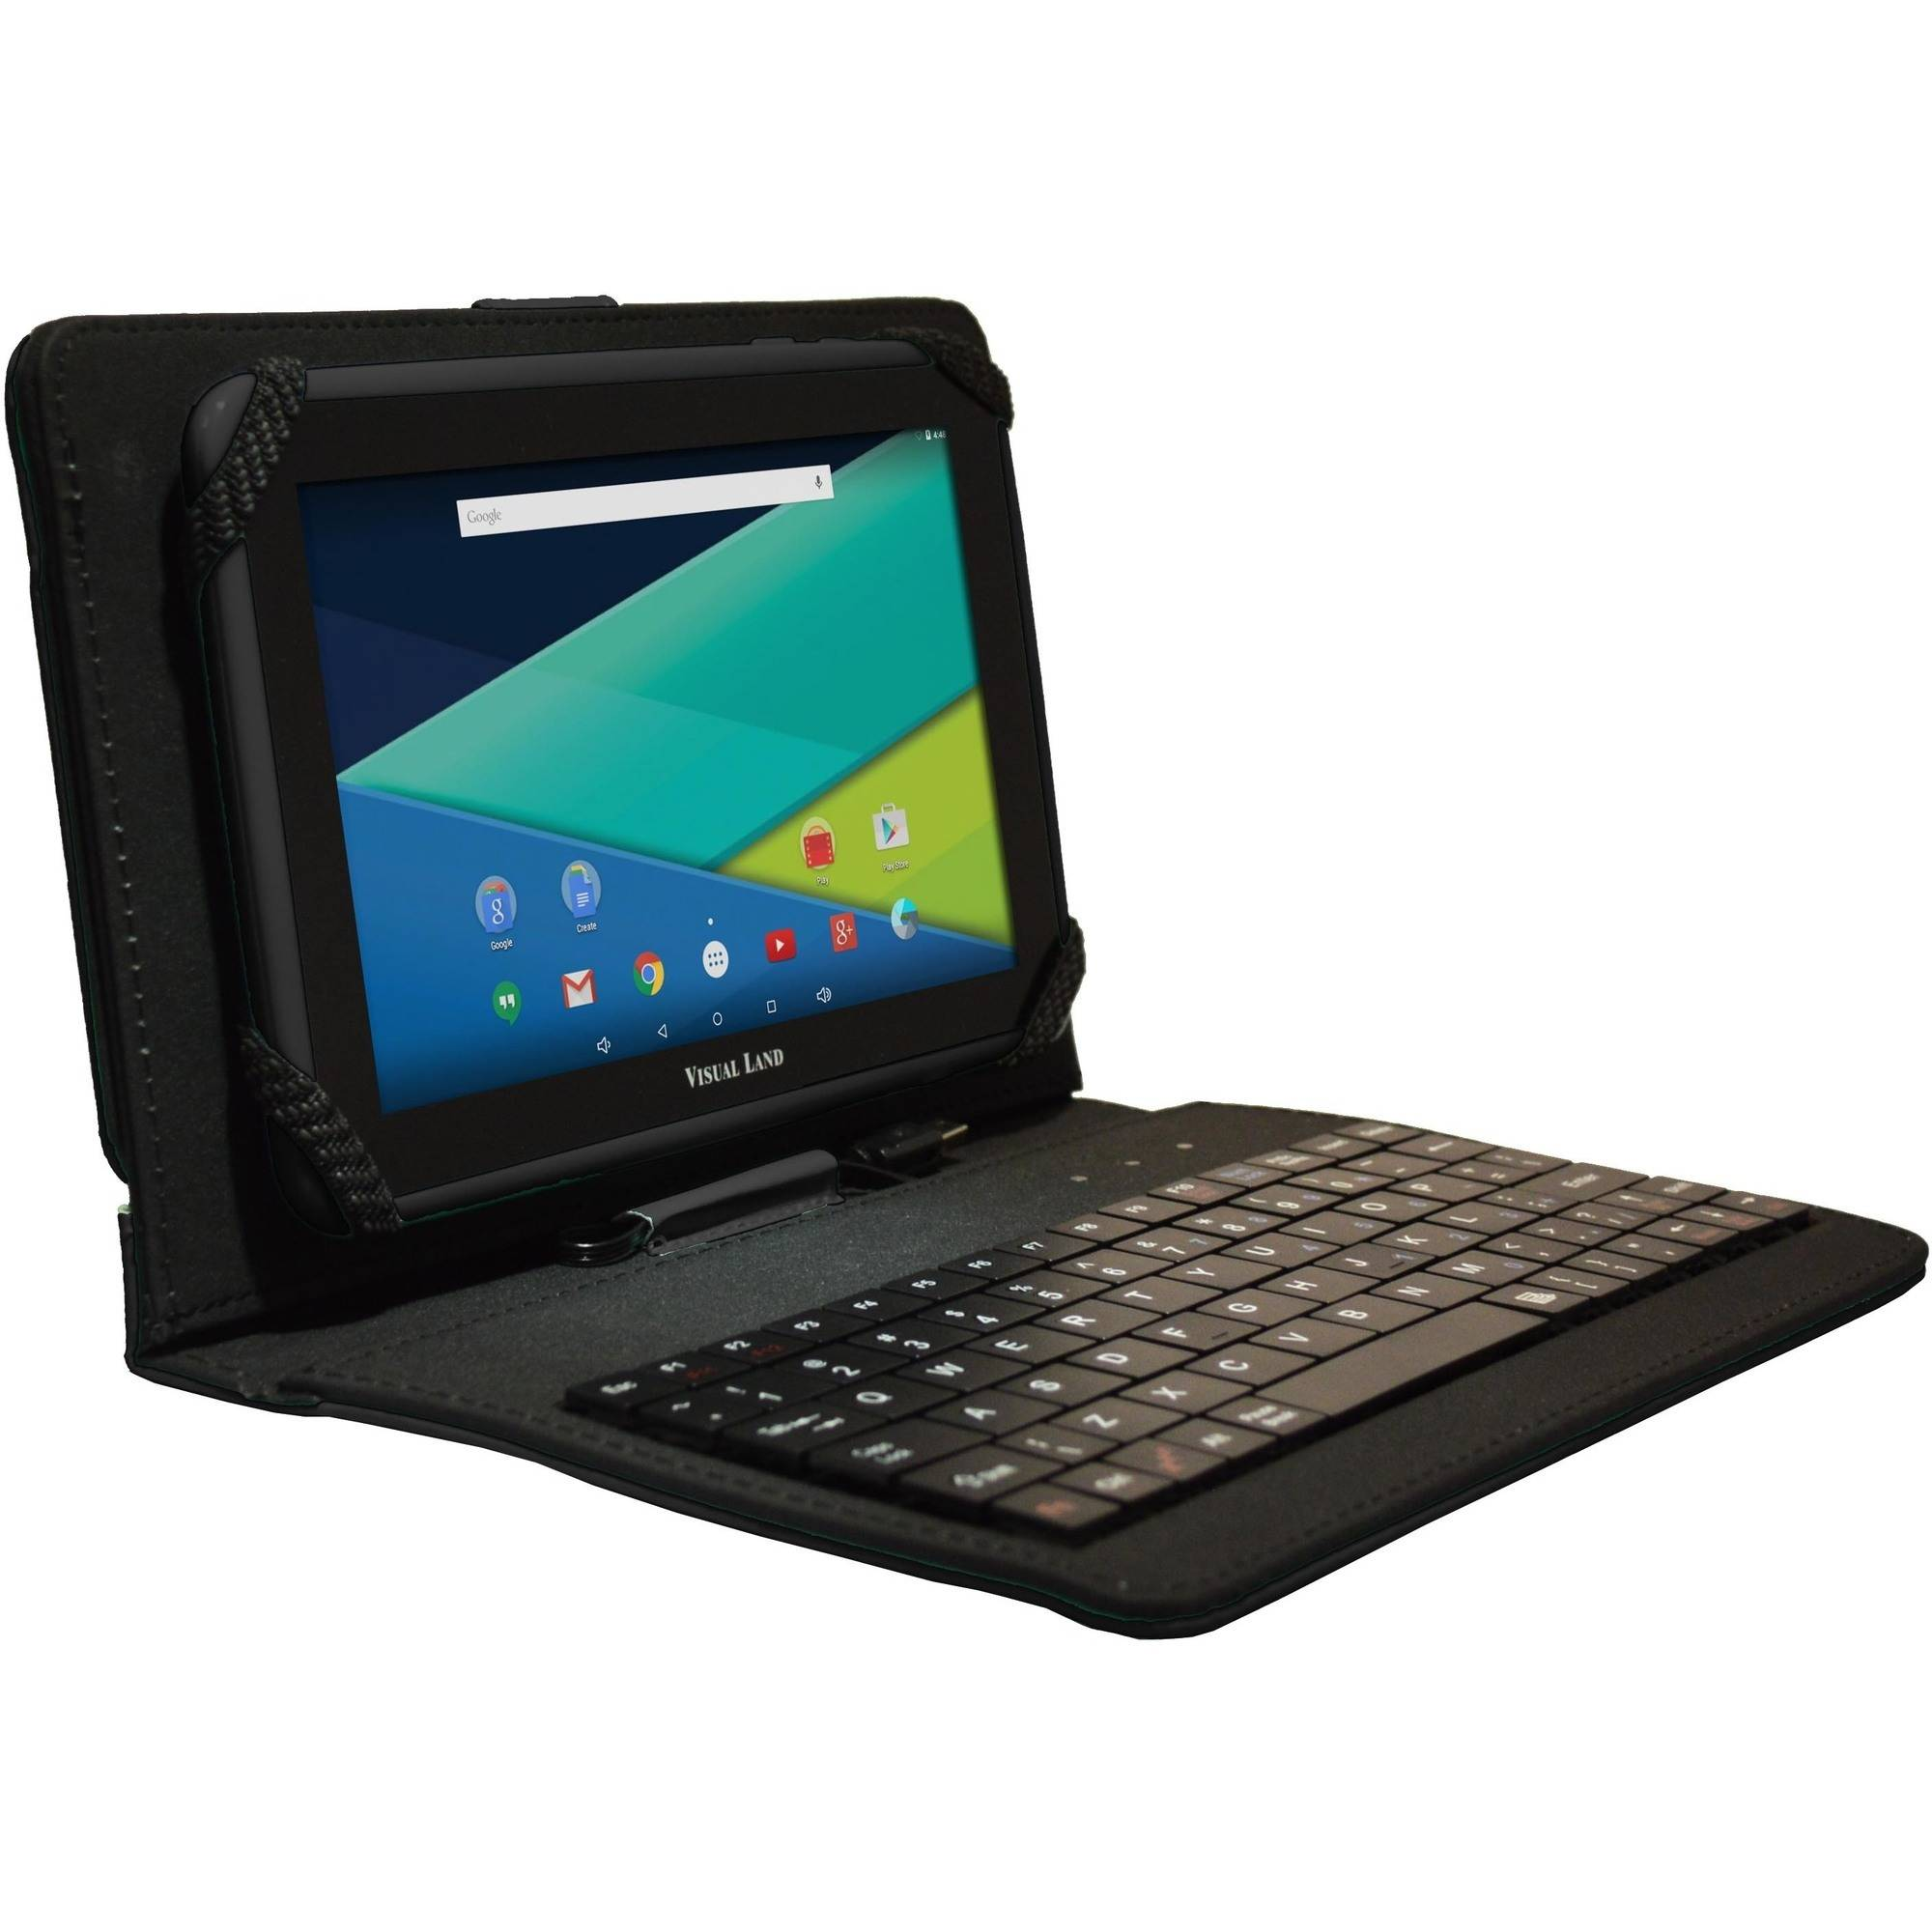 "Visual Land Prestige Elite 7"" Quad Core Tablet 8GB with Bonus Keyboard Case"